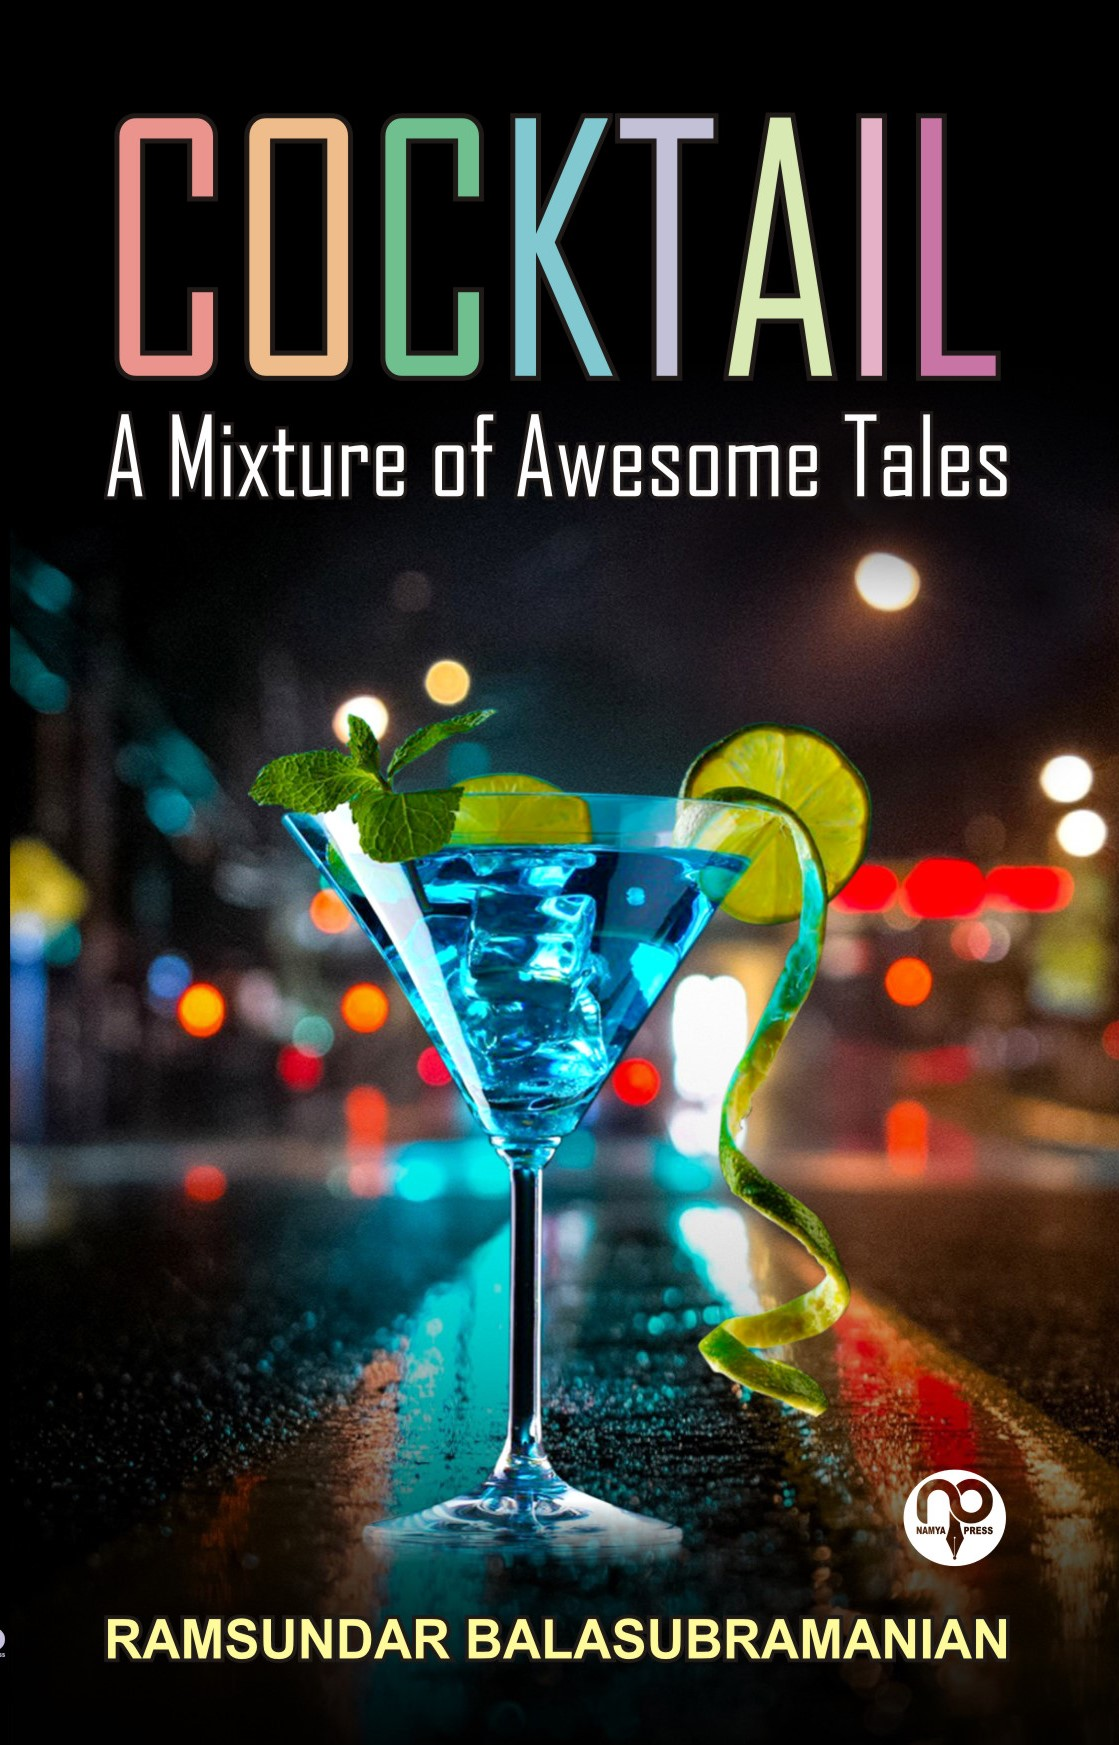 COCKTAIL- A MIXTURE OF AWESOME TALES